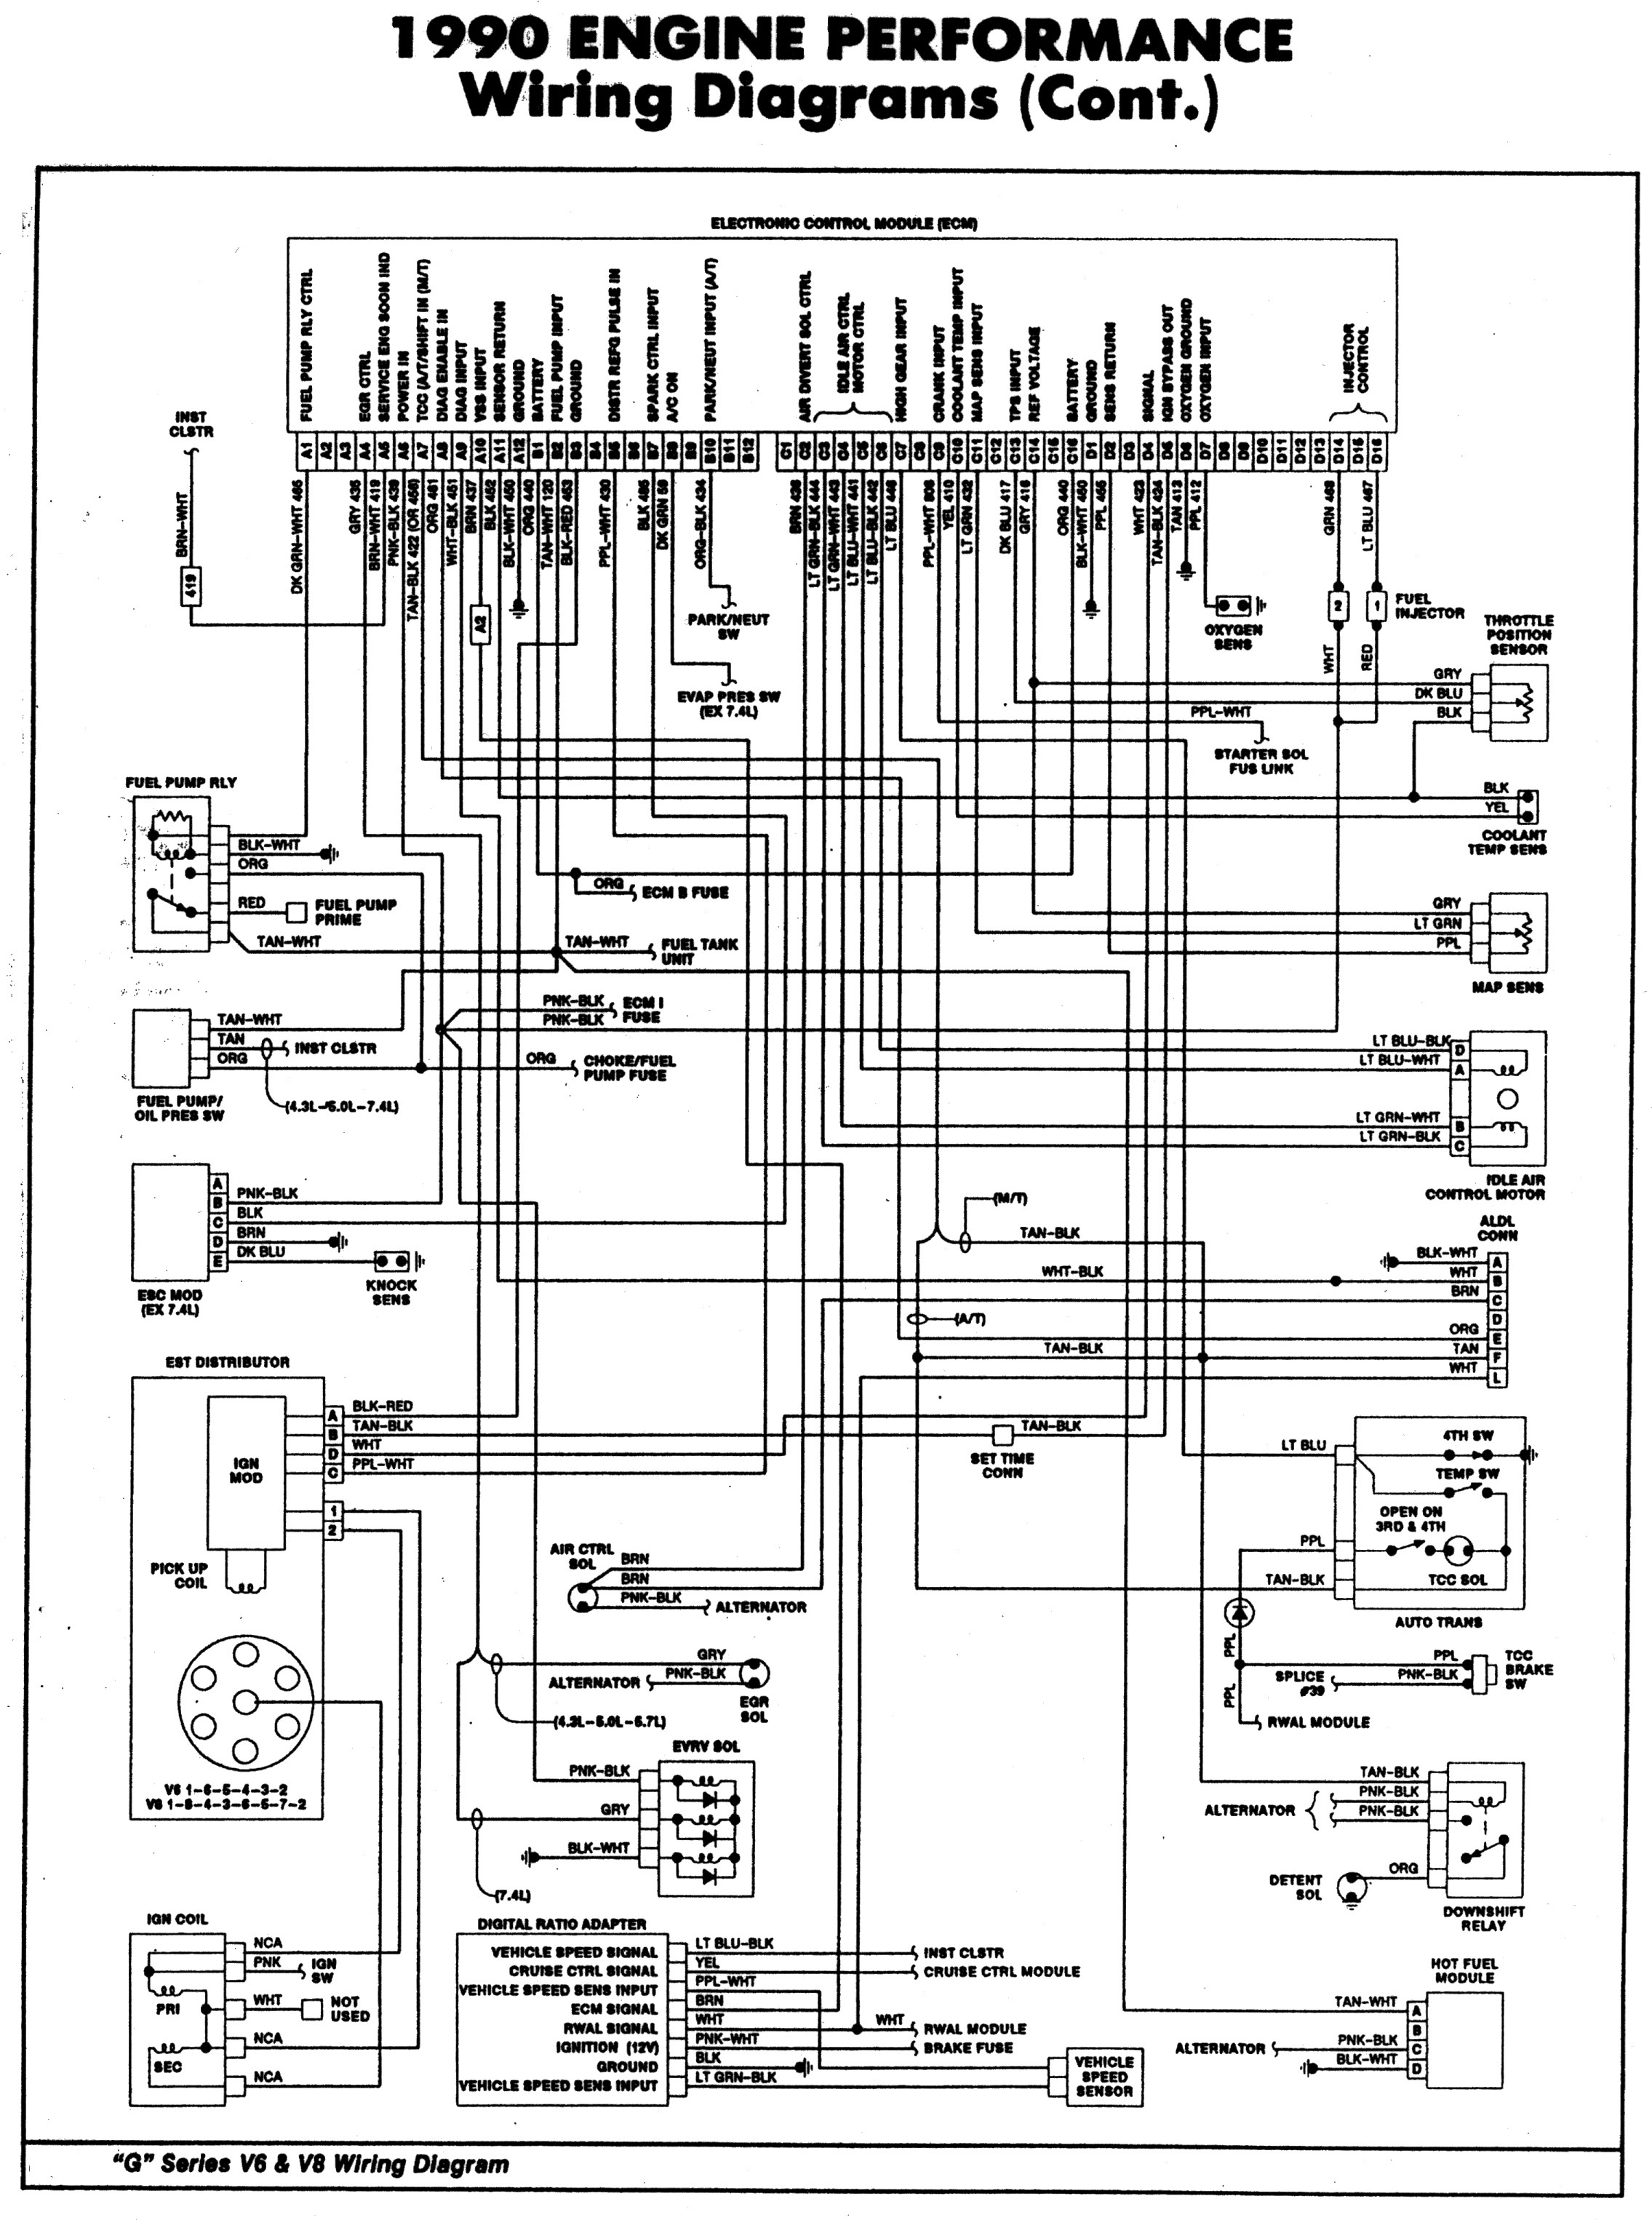 small resolution of ignitiondiagram 1990 chevy suburban tbi 350 installation land 1990 suburban fuel pump wiring diagram 1990 suburban wiring diagram